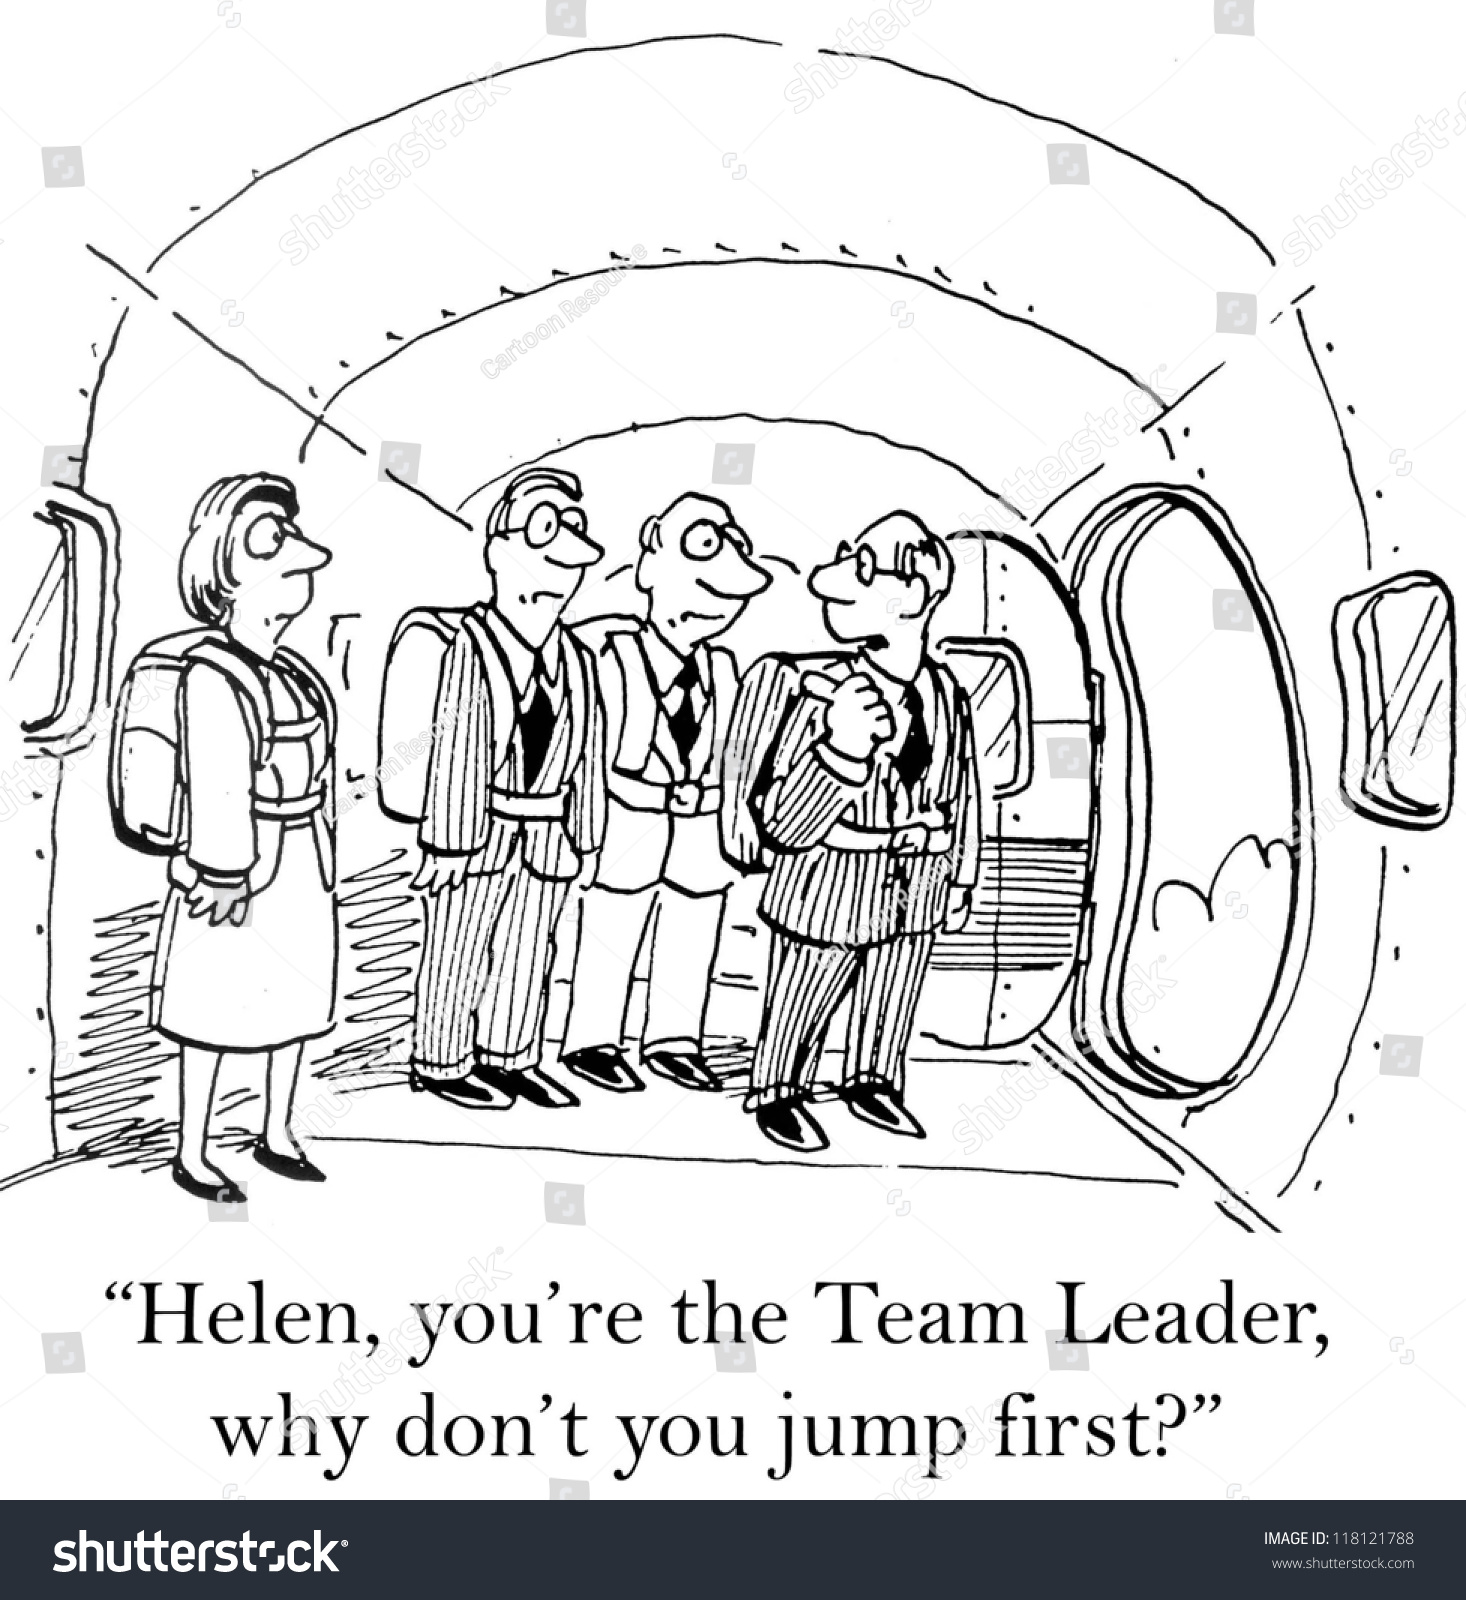 helen youre team leader why dont stock illustration 118121788 helen you re the team leader why don t you jump